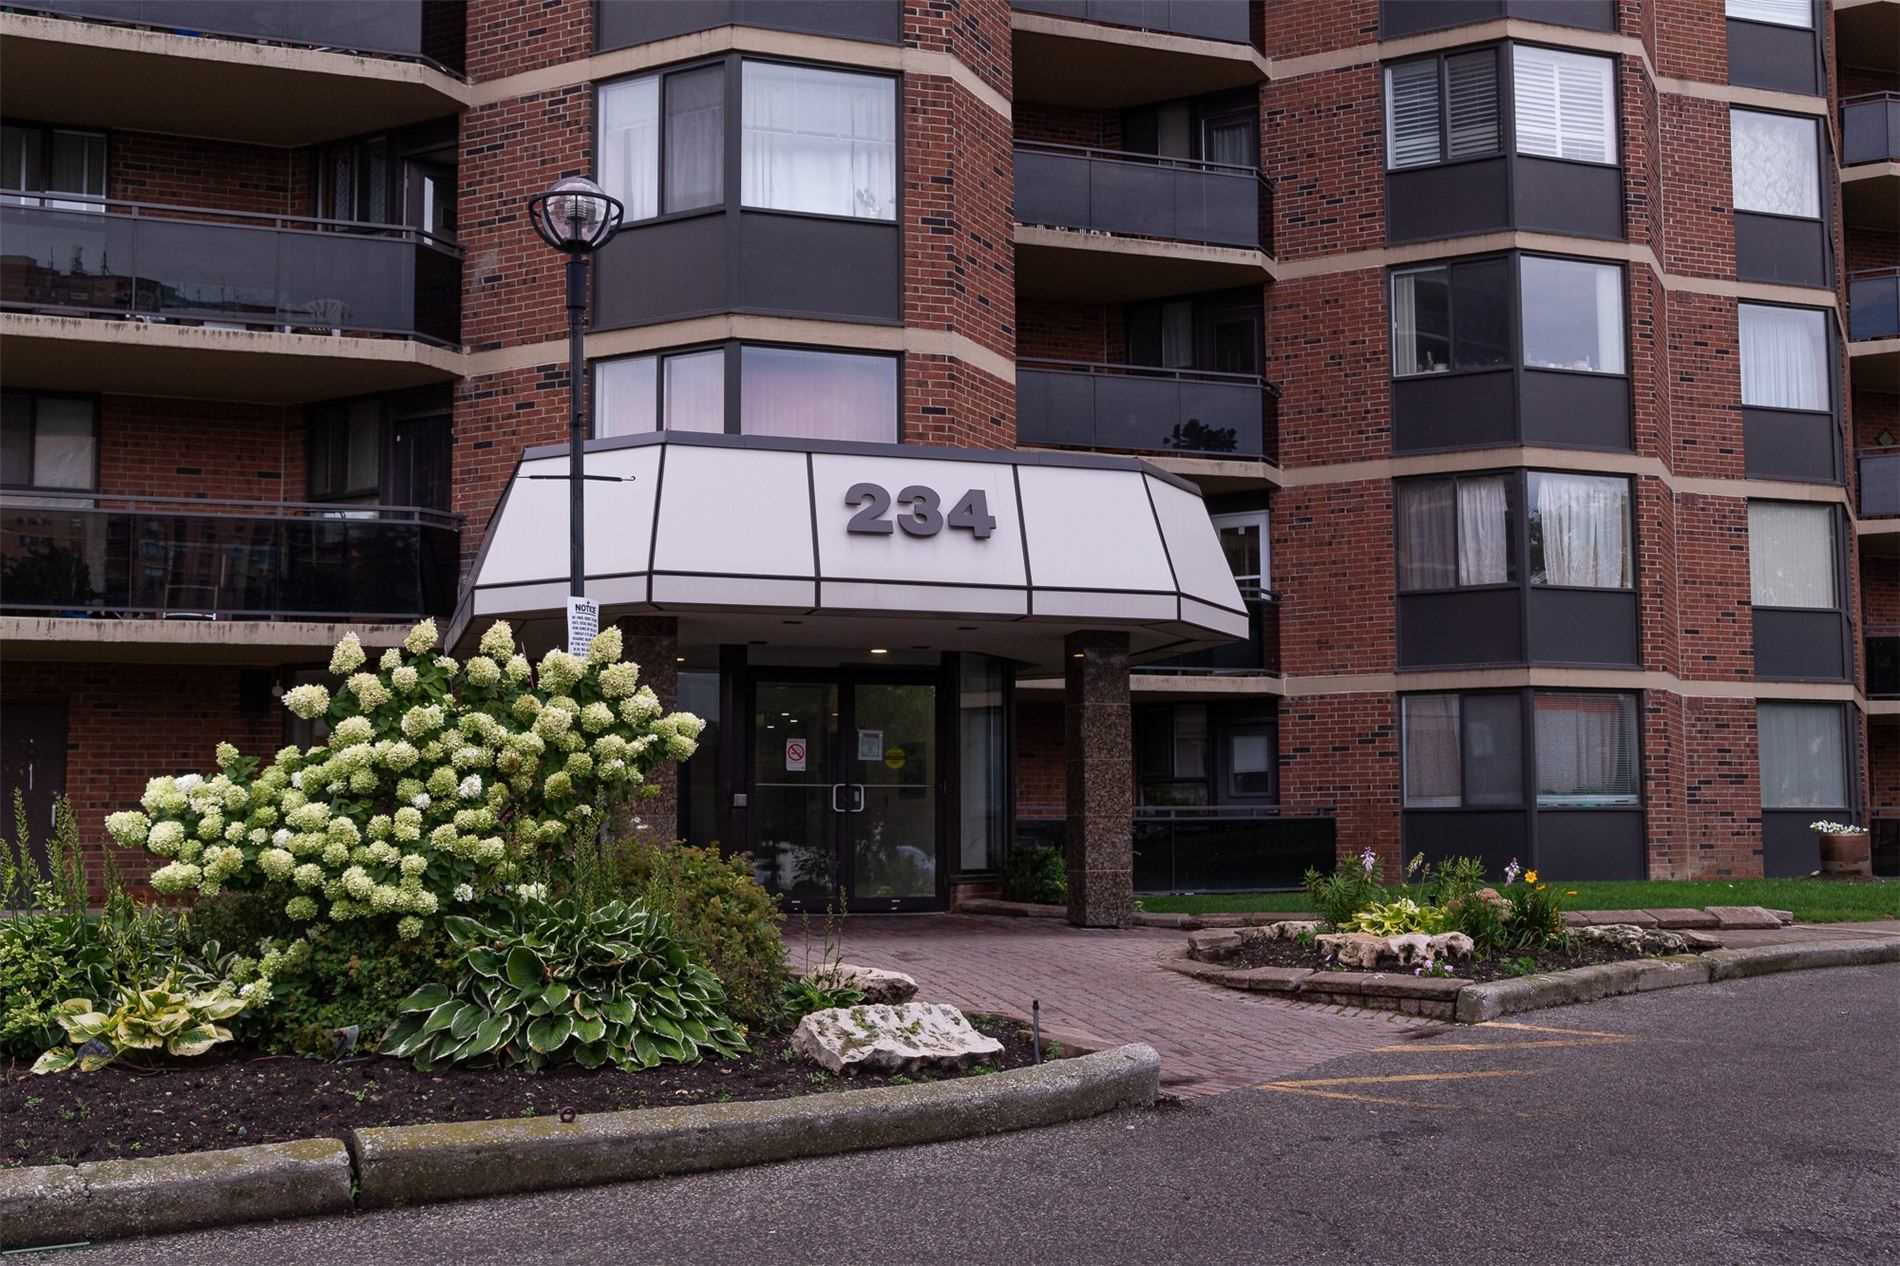 234 Albion Rd, Toronto, Ontario M9W6A5, 2 Bedrooms Bedrooms, 5 Rooms Rooms,1 BathroomBathrooms,Condo Apt,For Sale,Albion,W4912583